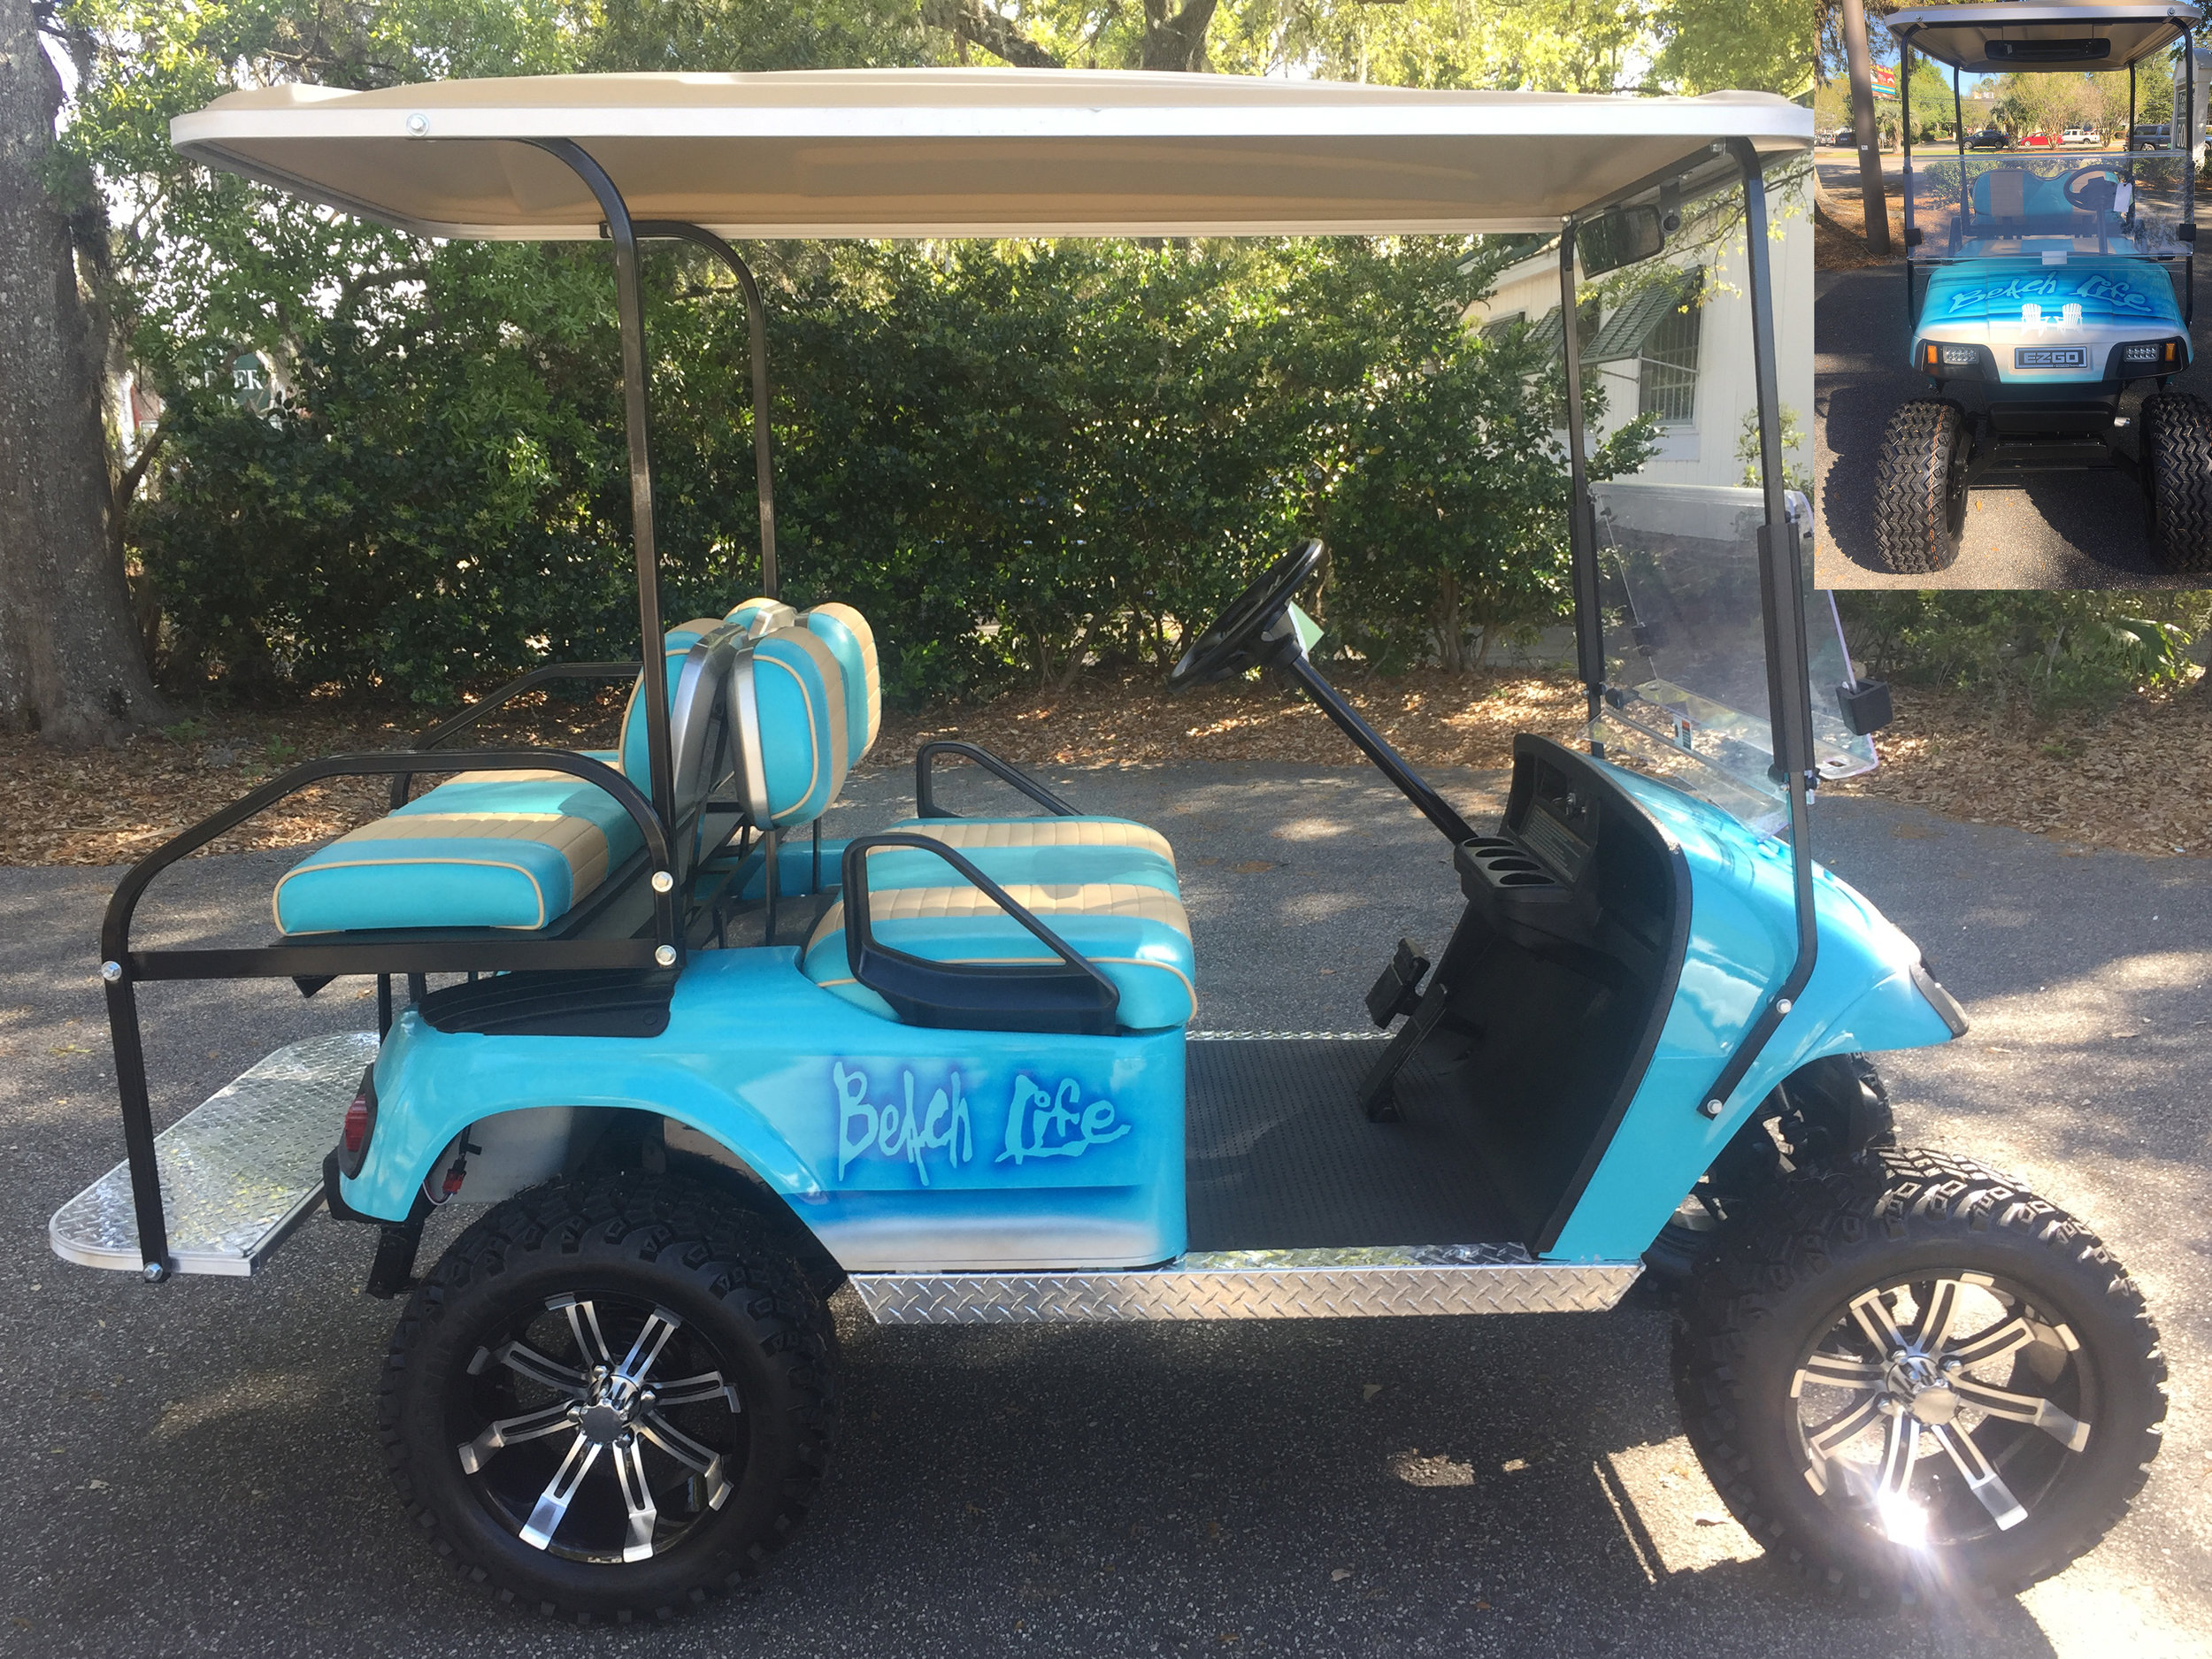 Aqua Beach Life EZGO Lifted Cart  Aqua/tan seats, tan extended top, new batteries, high speed code, LED lights, Backlash (23x10x14) tires, mirror, flip windshield, and state of charge meter